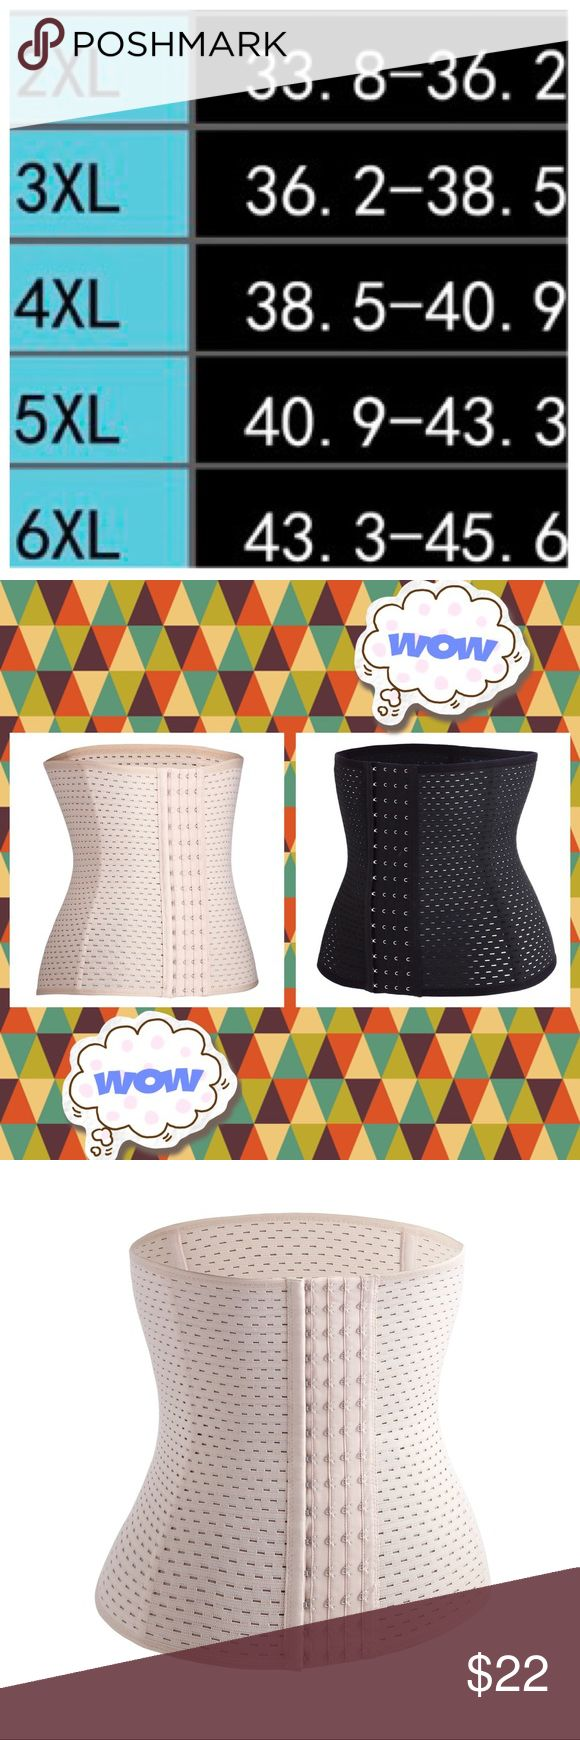 2 Pack Waist Trainer Slimming Corset Bundle Bundle includes a cream and black waist trainer Condition: Brand new in packaging Color: Black / Cream  Length: 10 in (25cm) Material: 90% Polyester / 10% Spandex Construction: 3 Rows of hooks and 4 flexible steel spring support rods Intimates & Sleepwear Shapewear